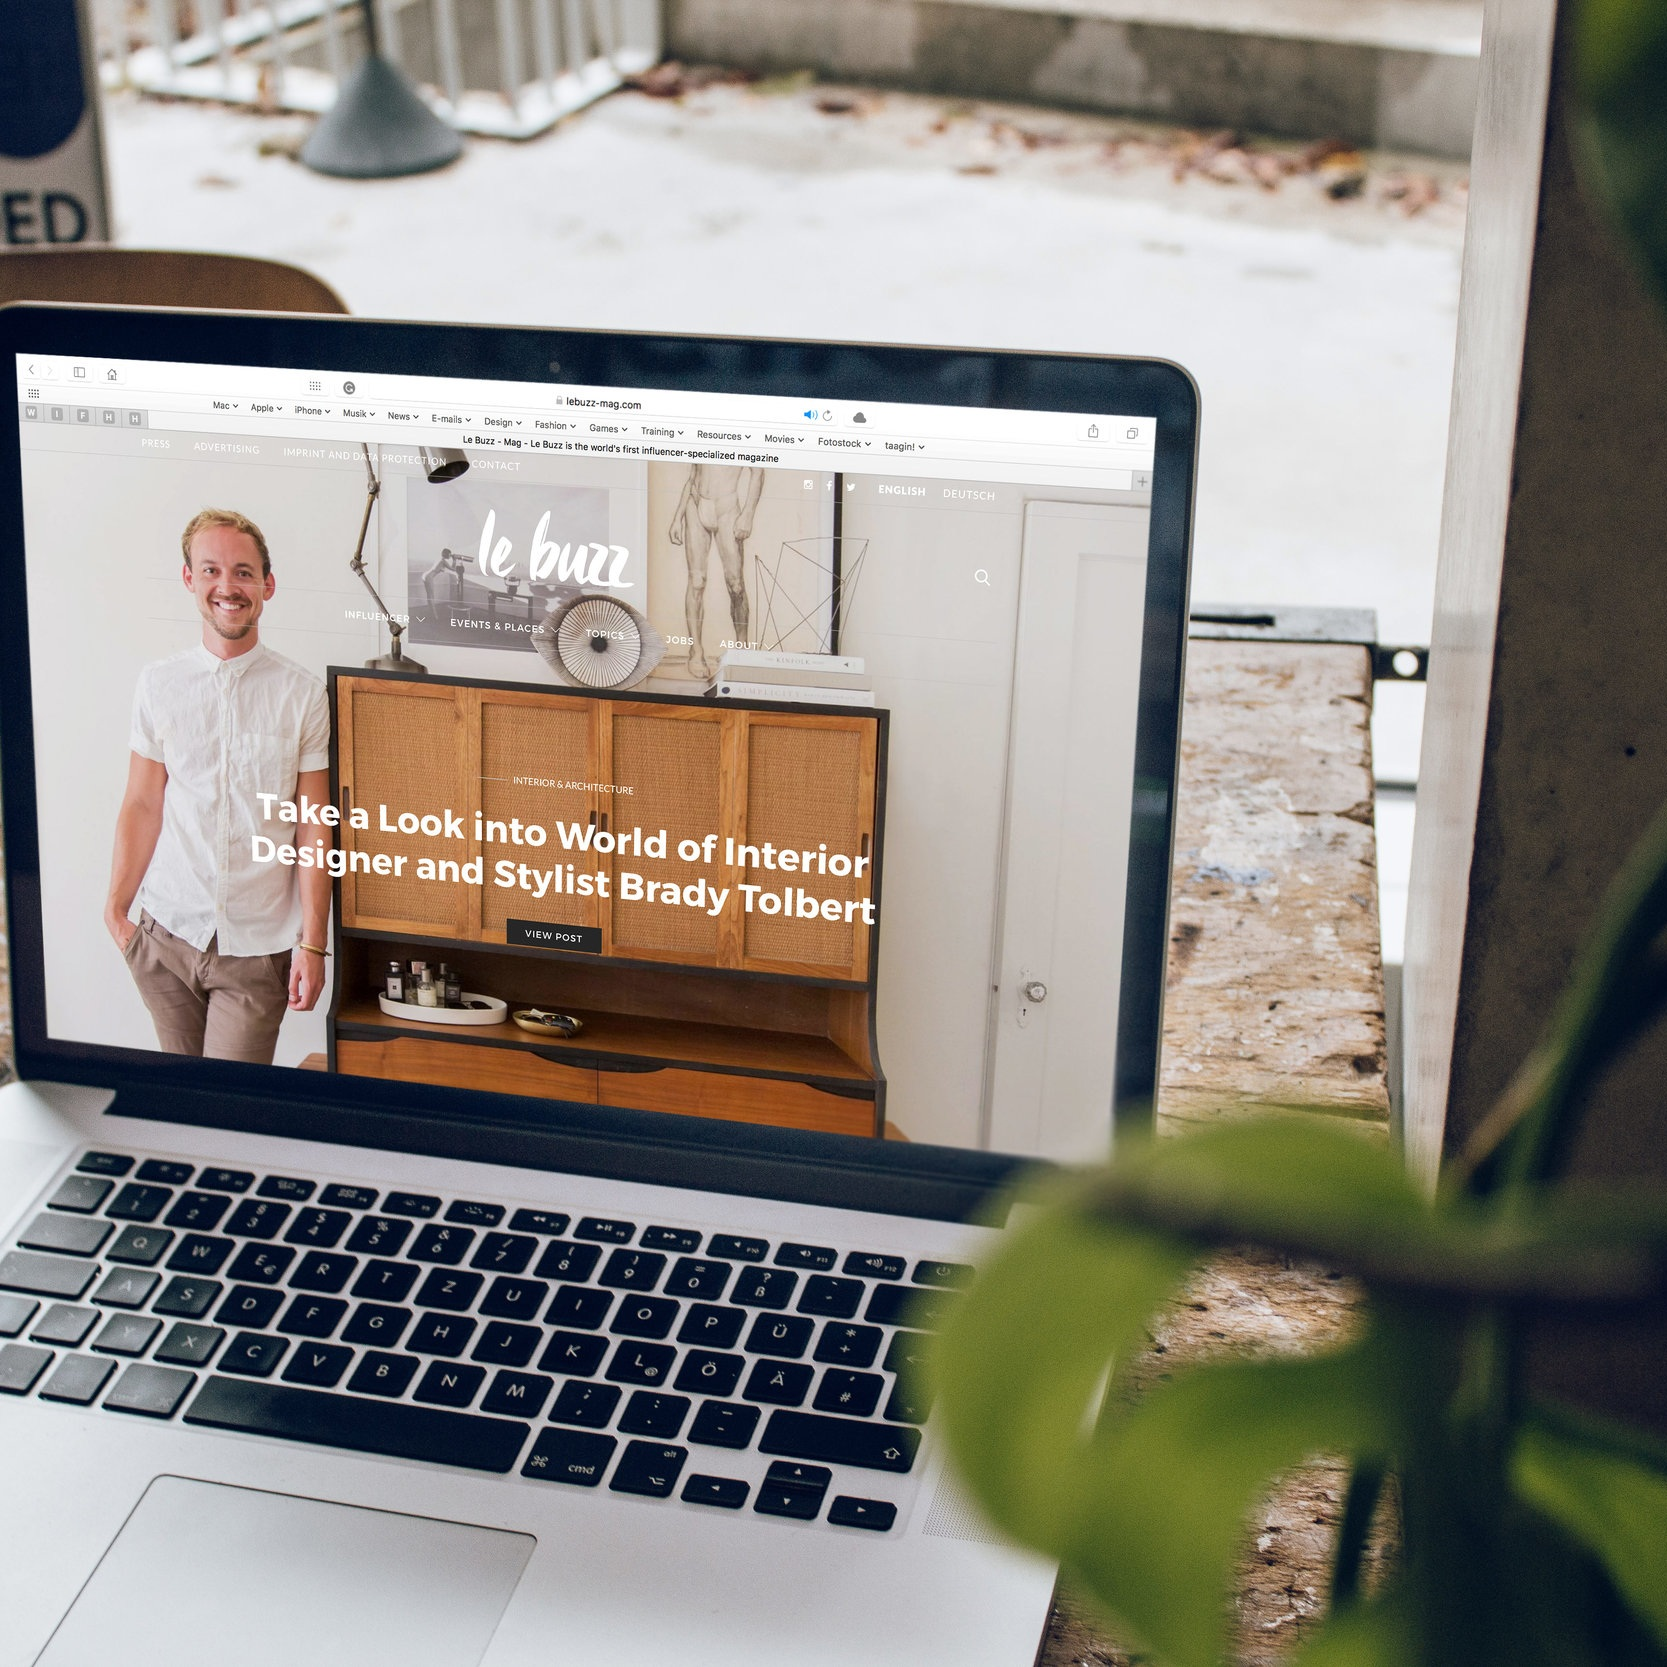 Blue Host - Starting an online business is now easier more than ever. All it starts with is a GOOD website or landing page! Bluehost is a BUDGET FRIENDLY option for those just starting out, at only $3.48 per month! CHECK THEM OUT BELOW